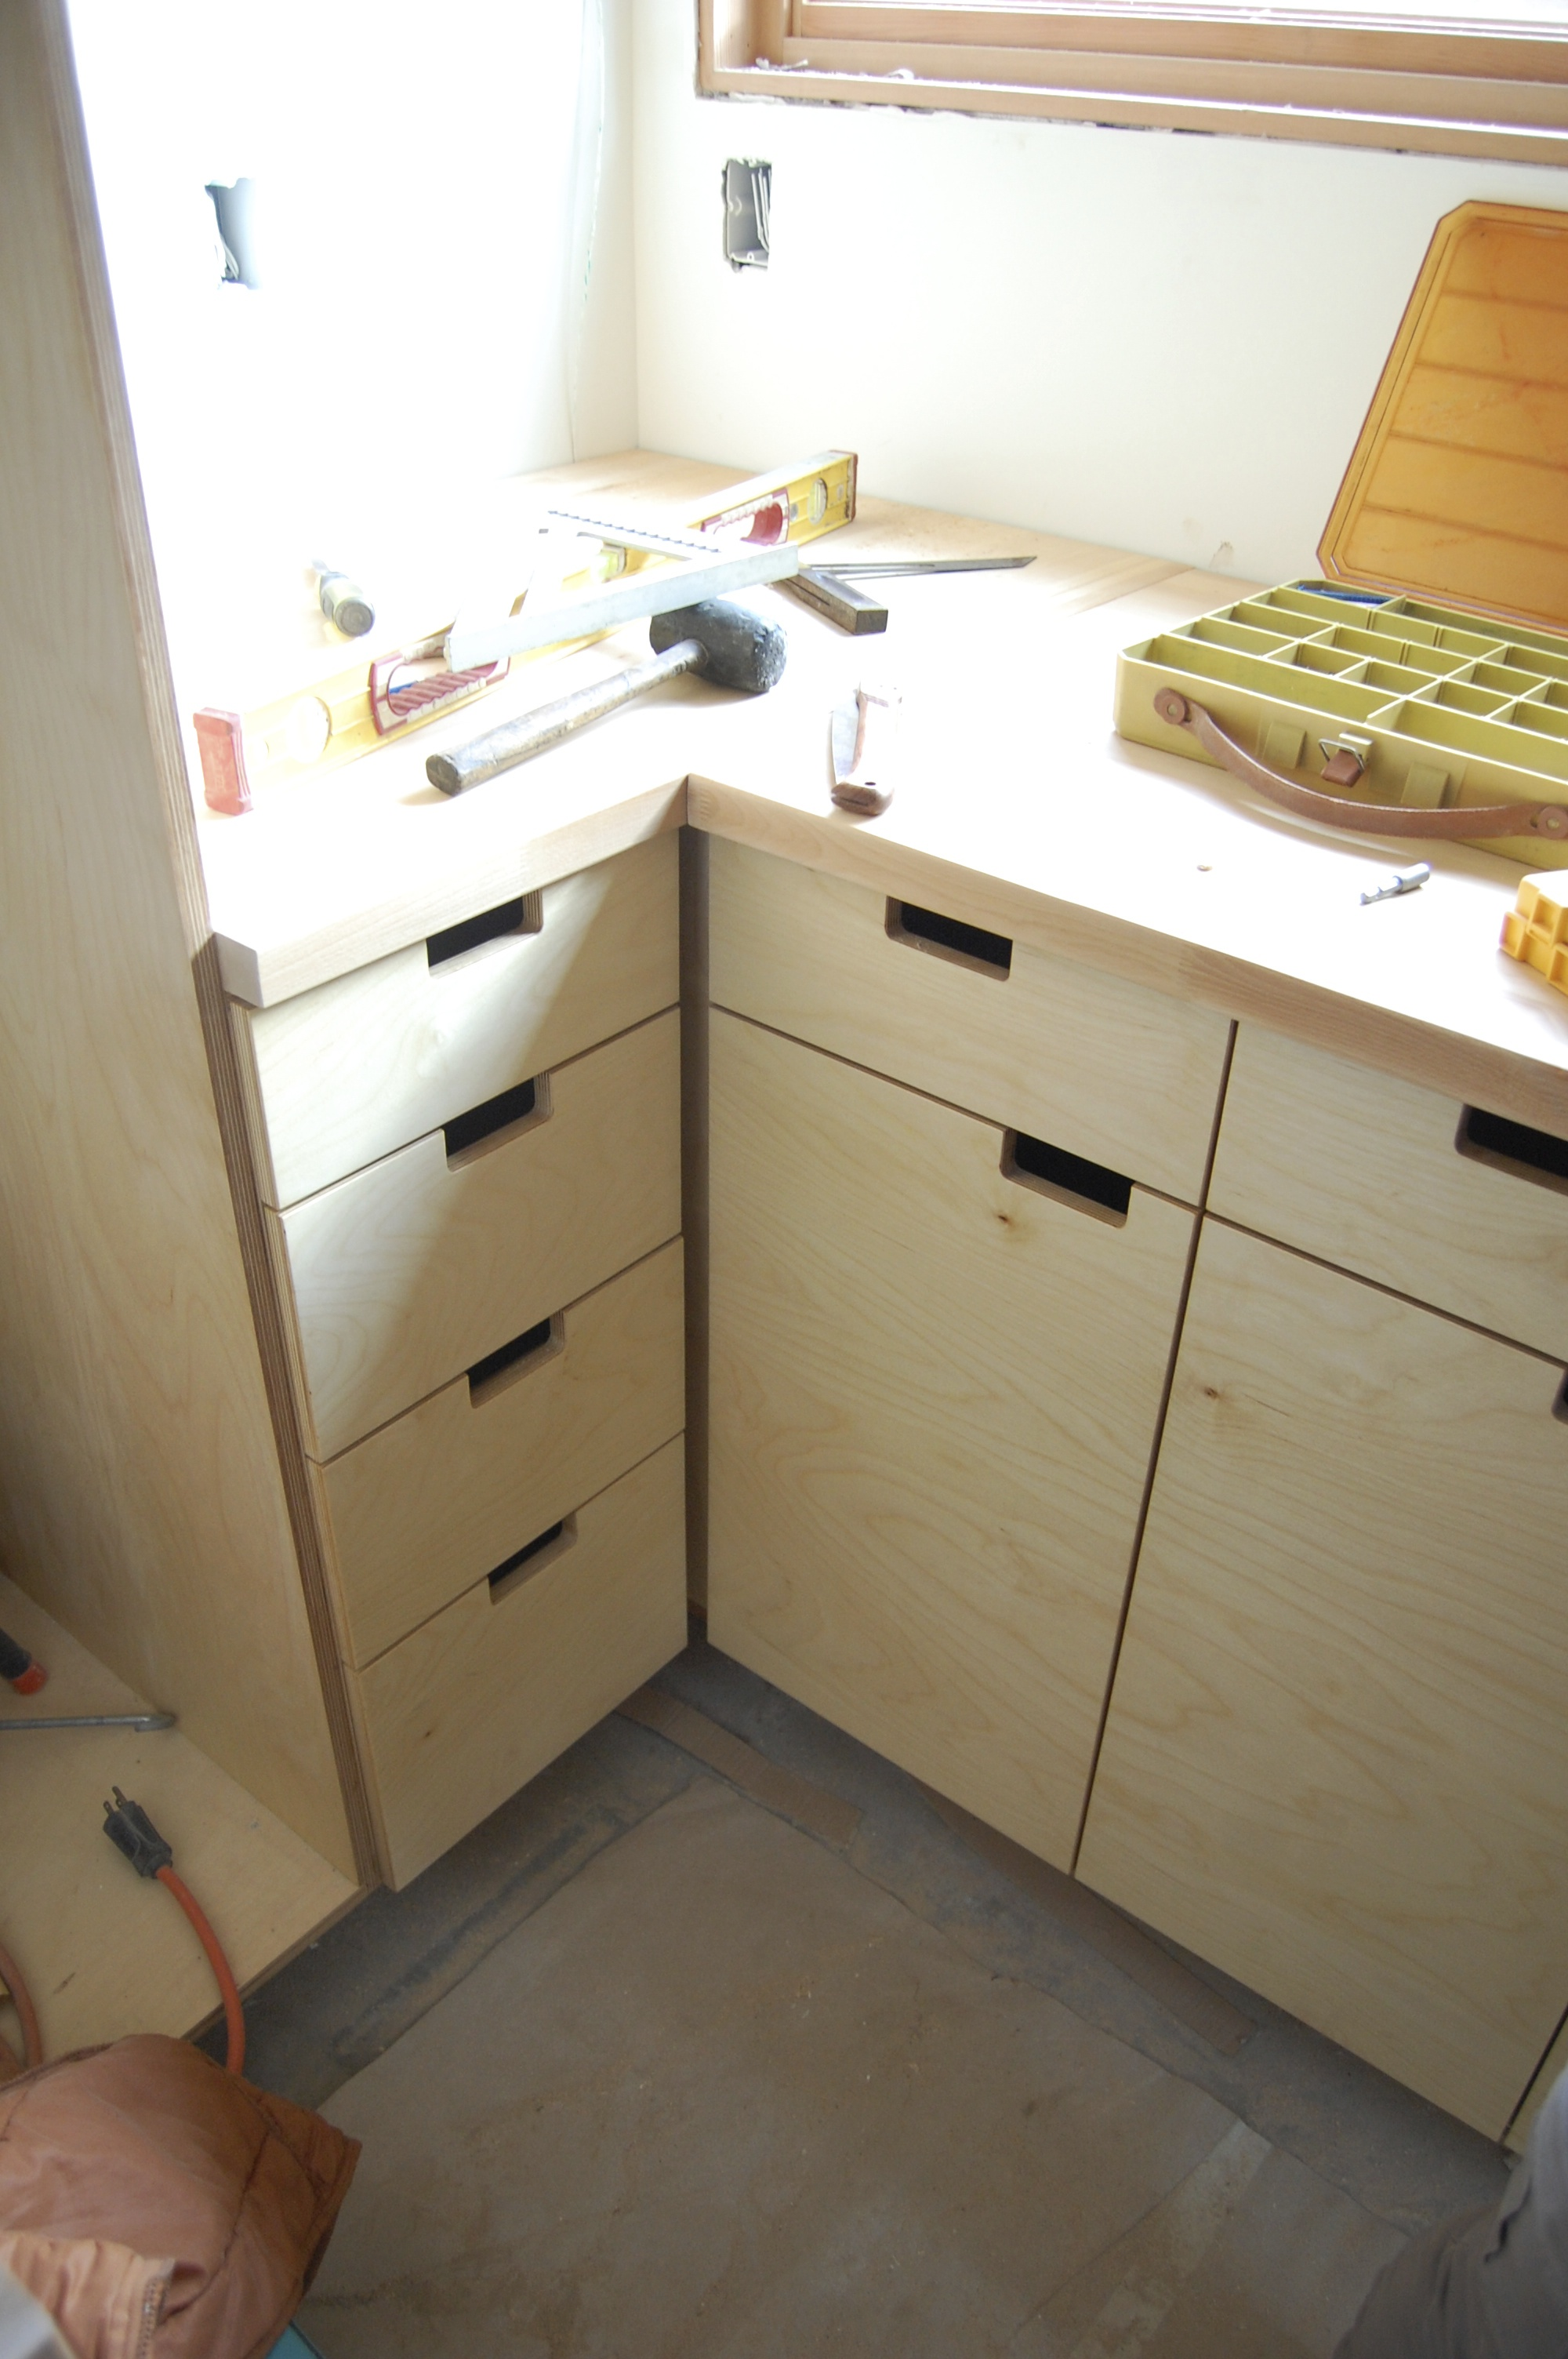 ikea kitchen base cabinets 4 person table cabinets- custom plywood beauties | adu: a design undertaking